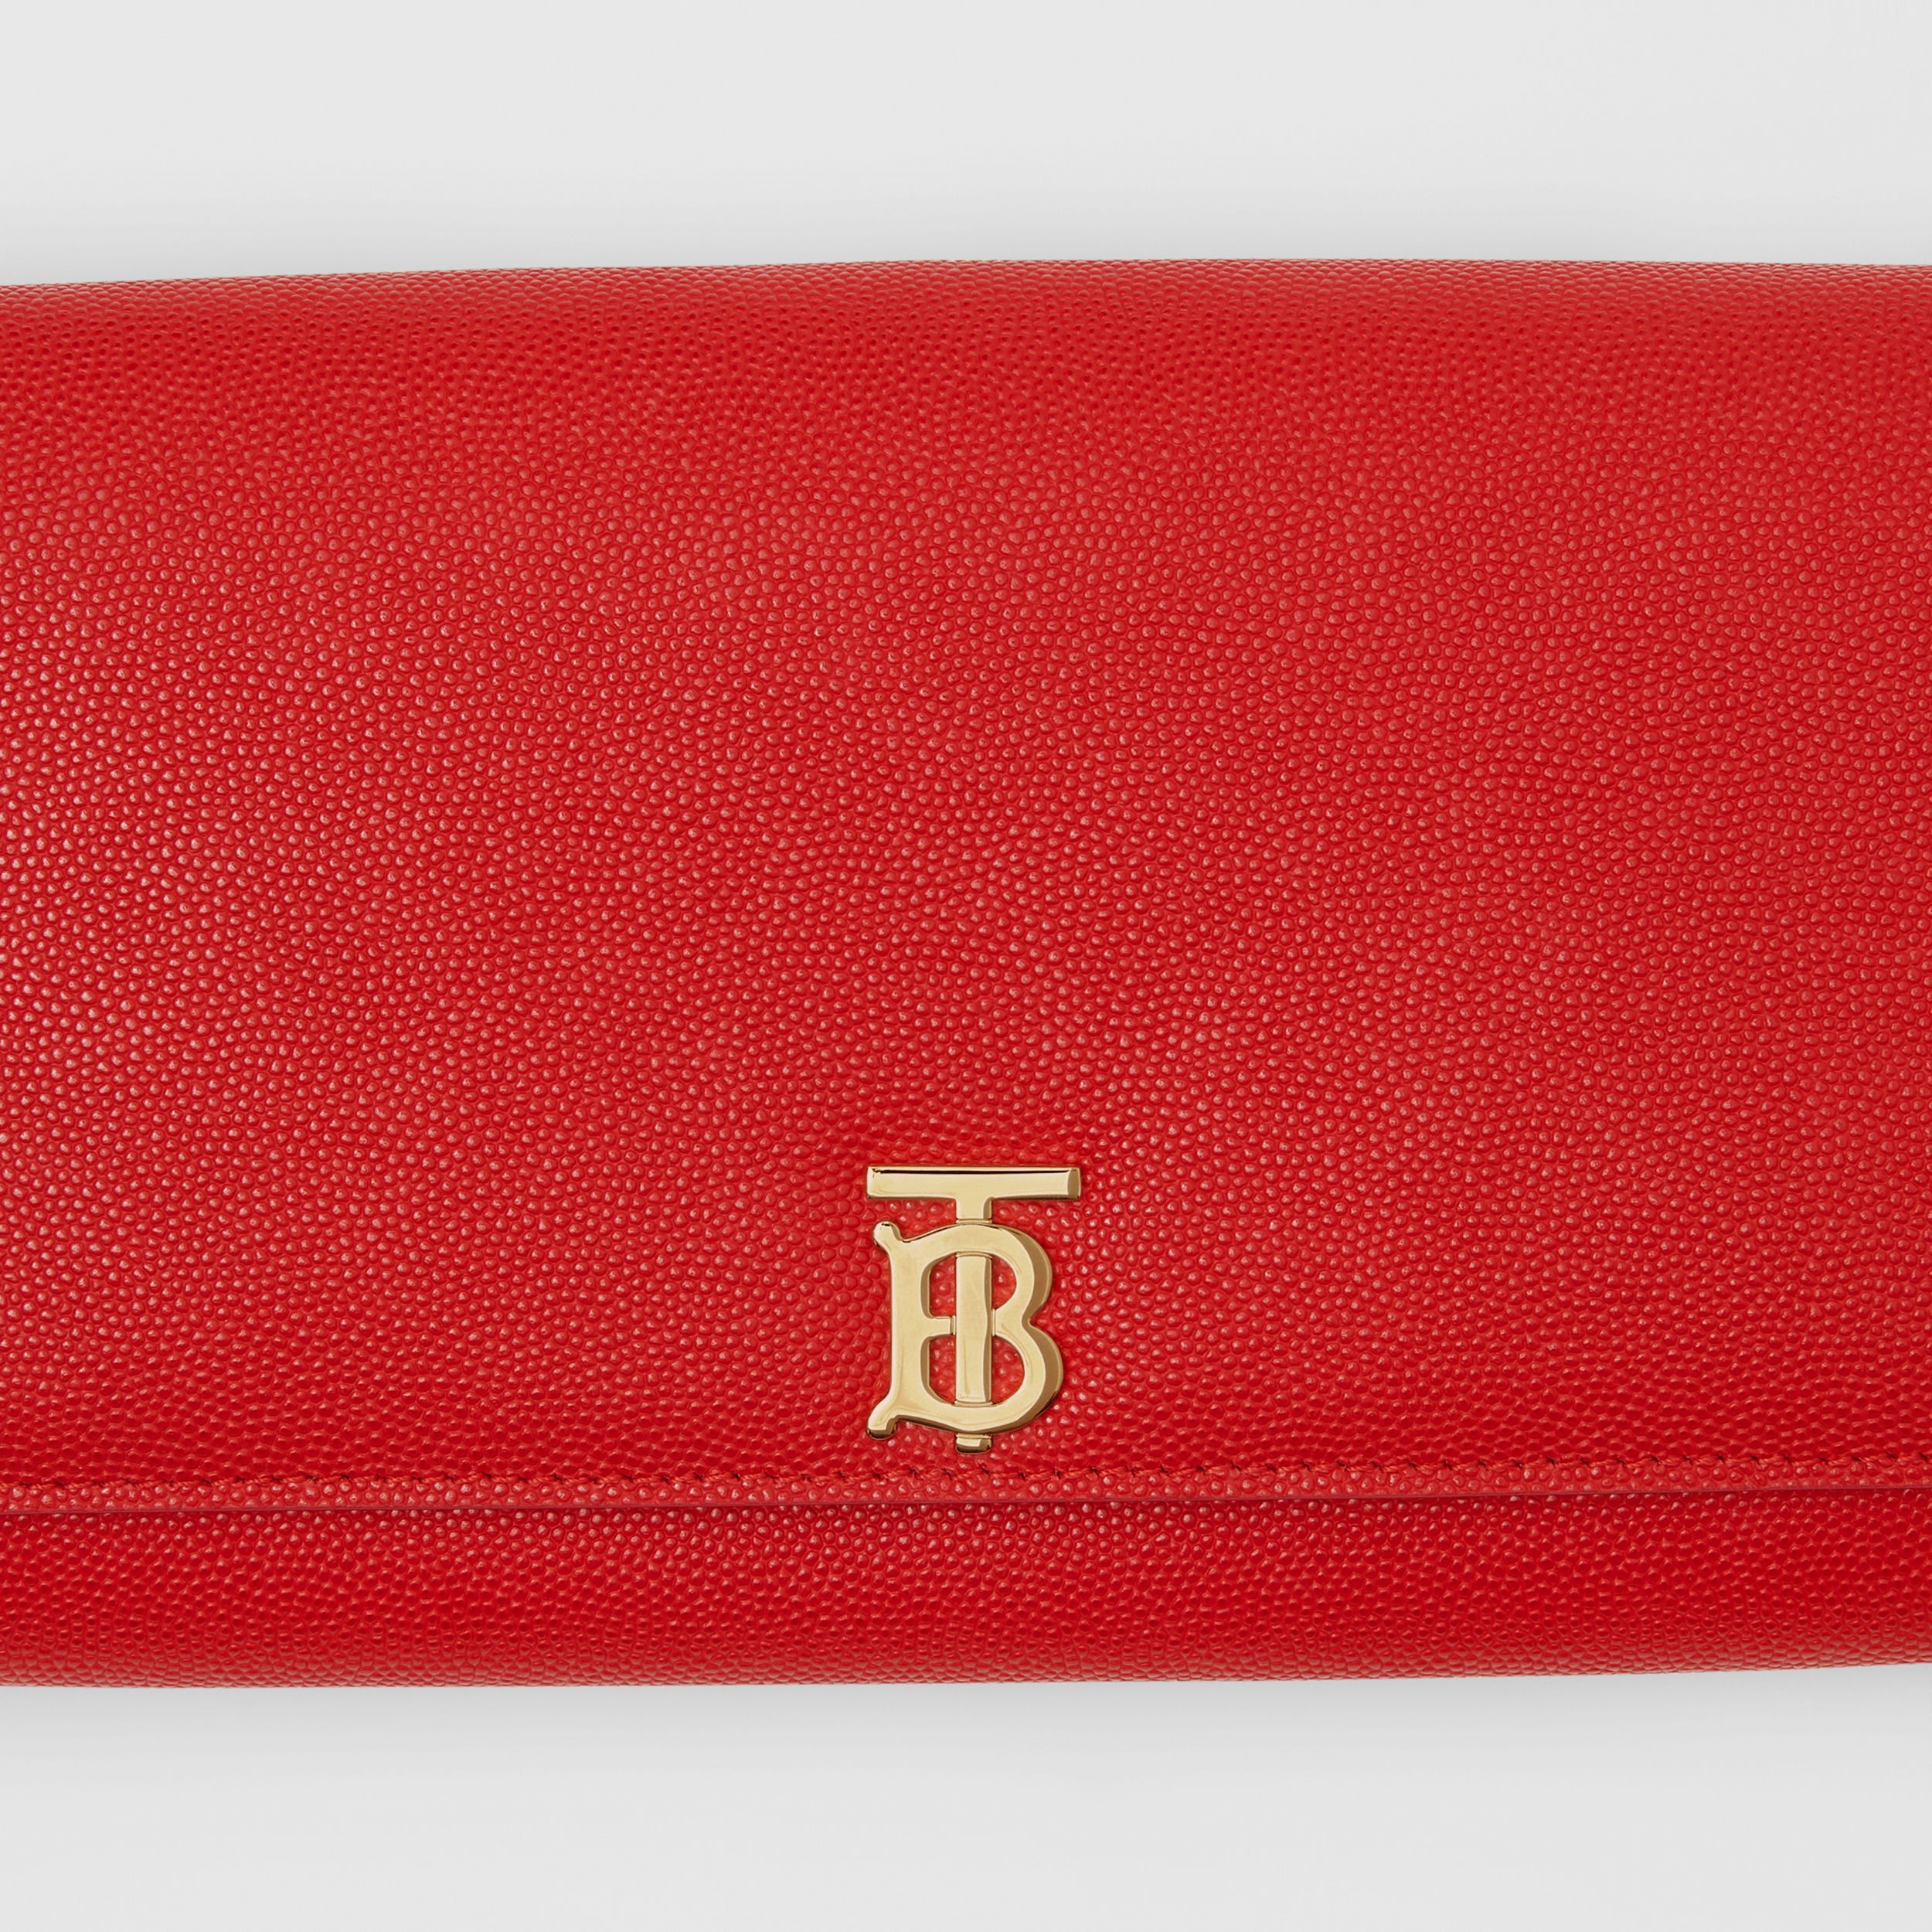 Monogram Motif Leather Wallet with Detachable Strap in Bright Red - Women | Burberry - 2